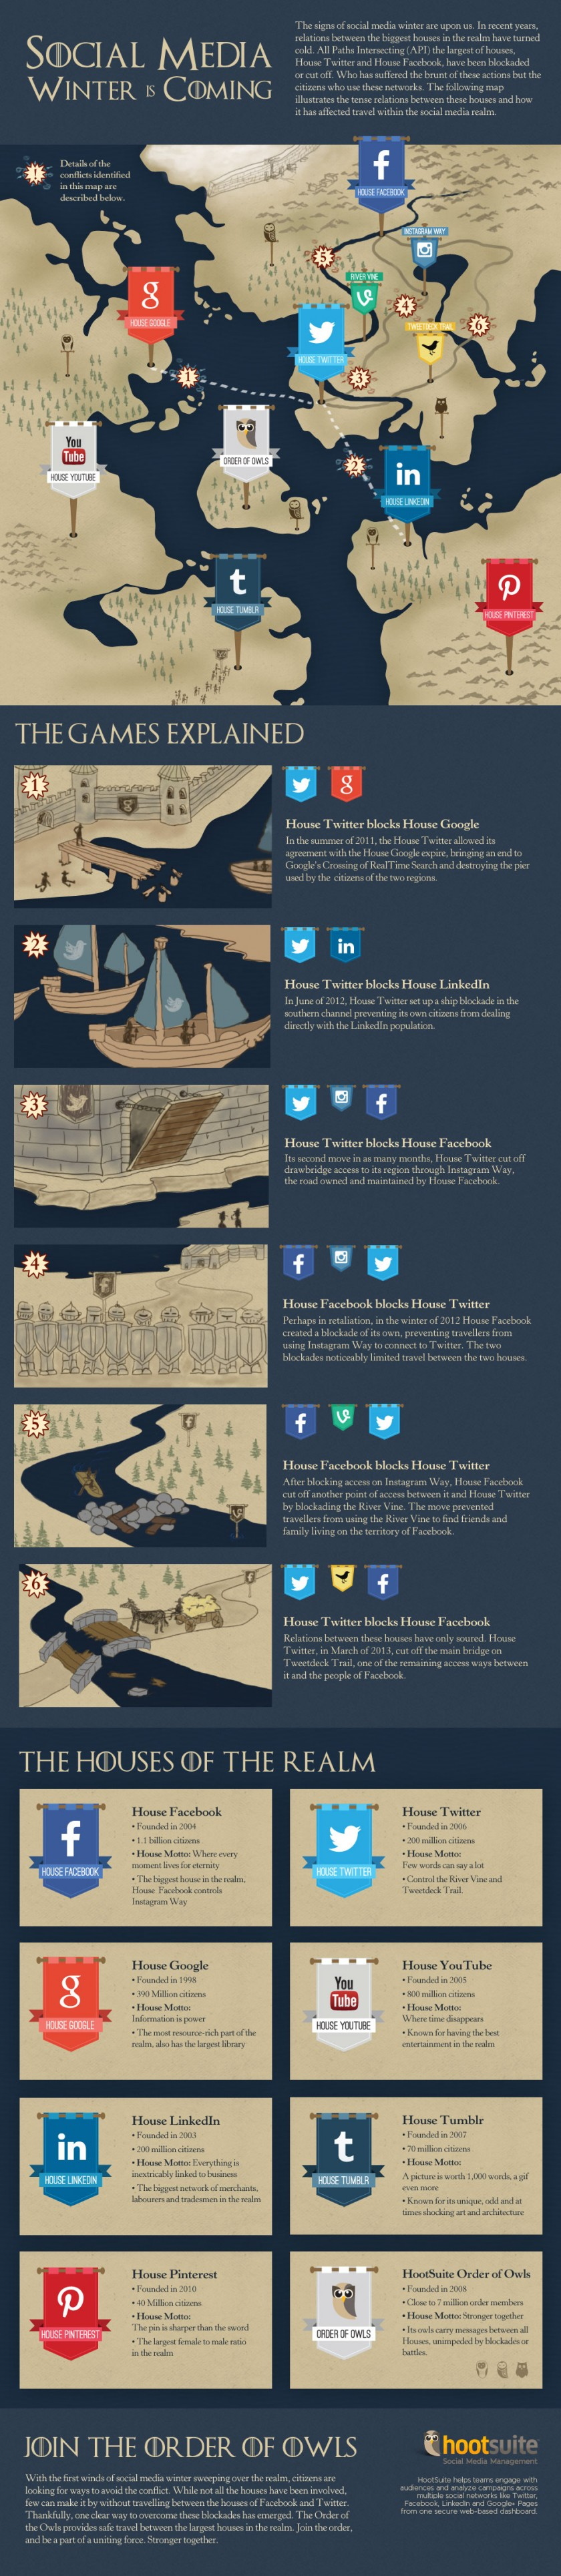 Hootsuite - Game of Thrones - Social Media Winter is Coming infographic